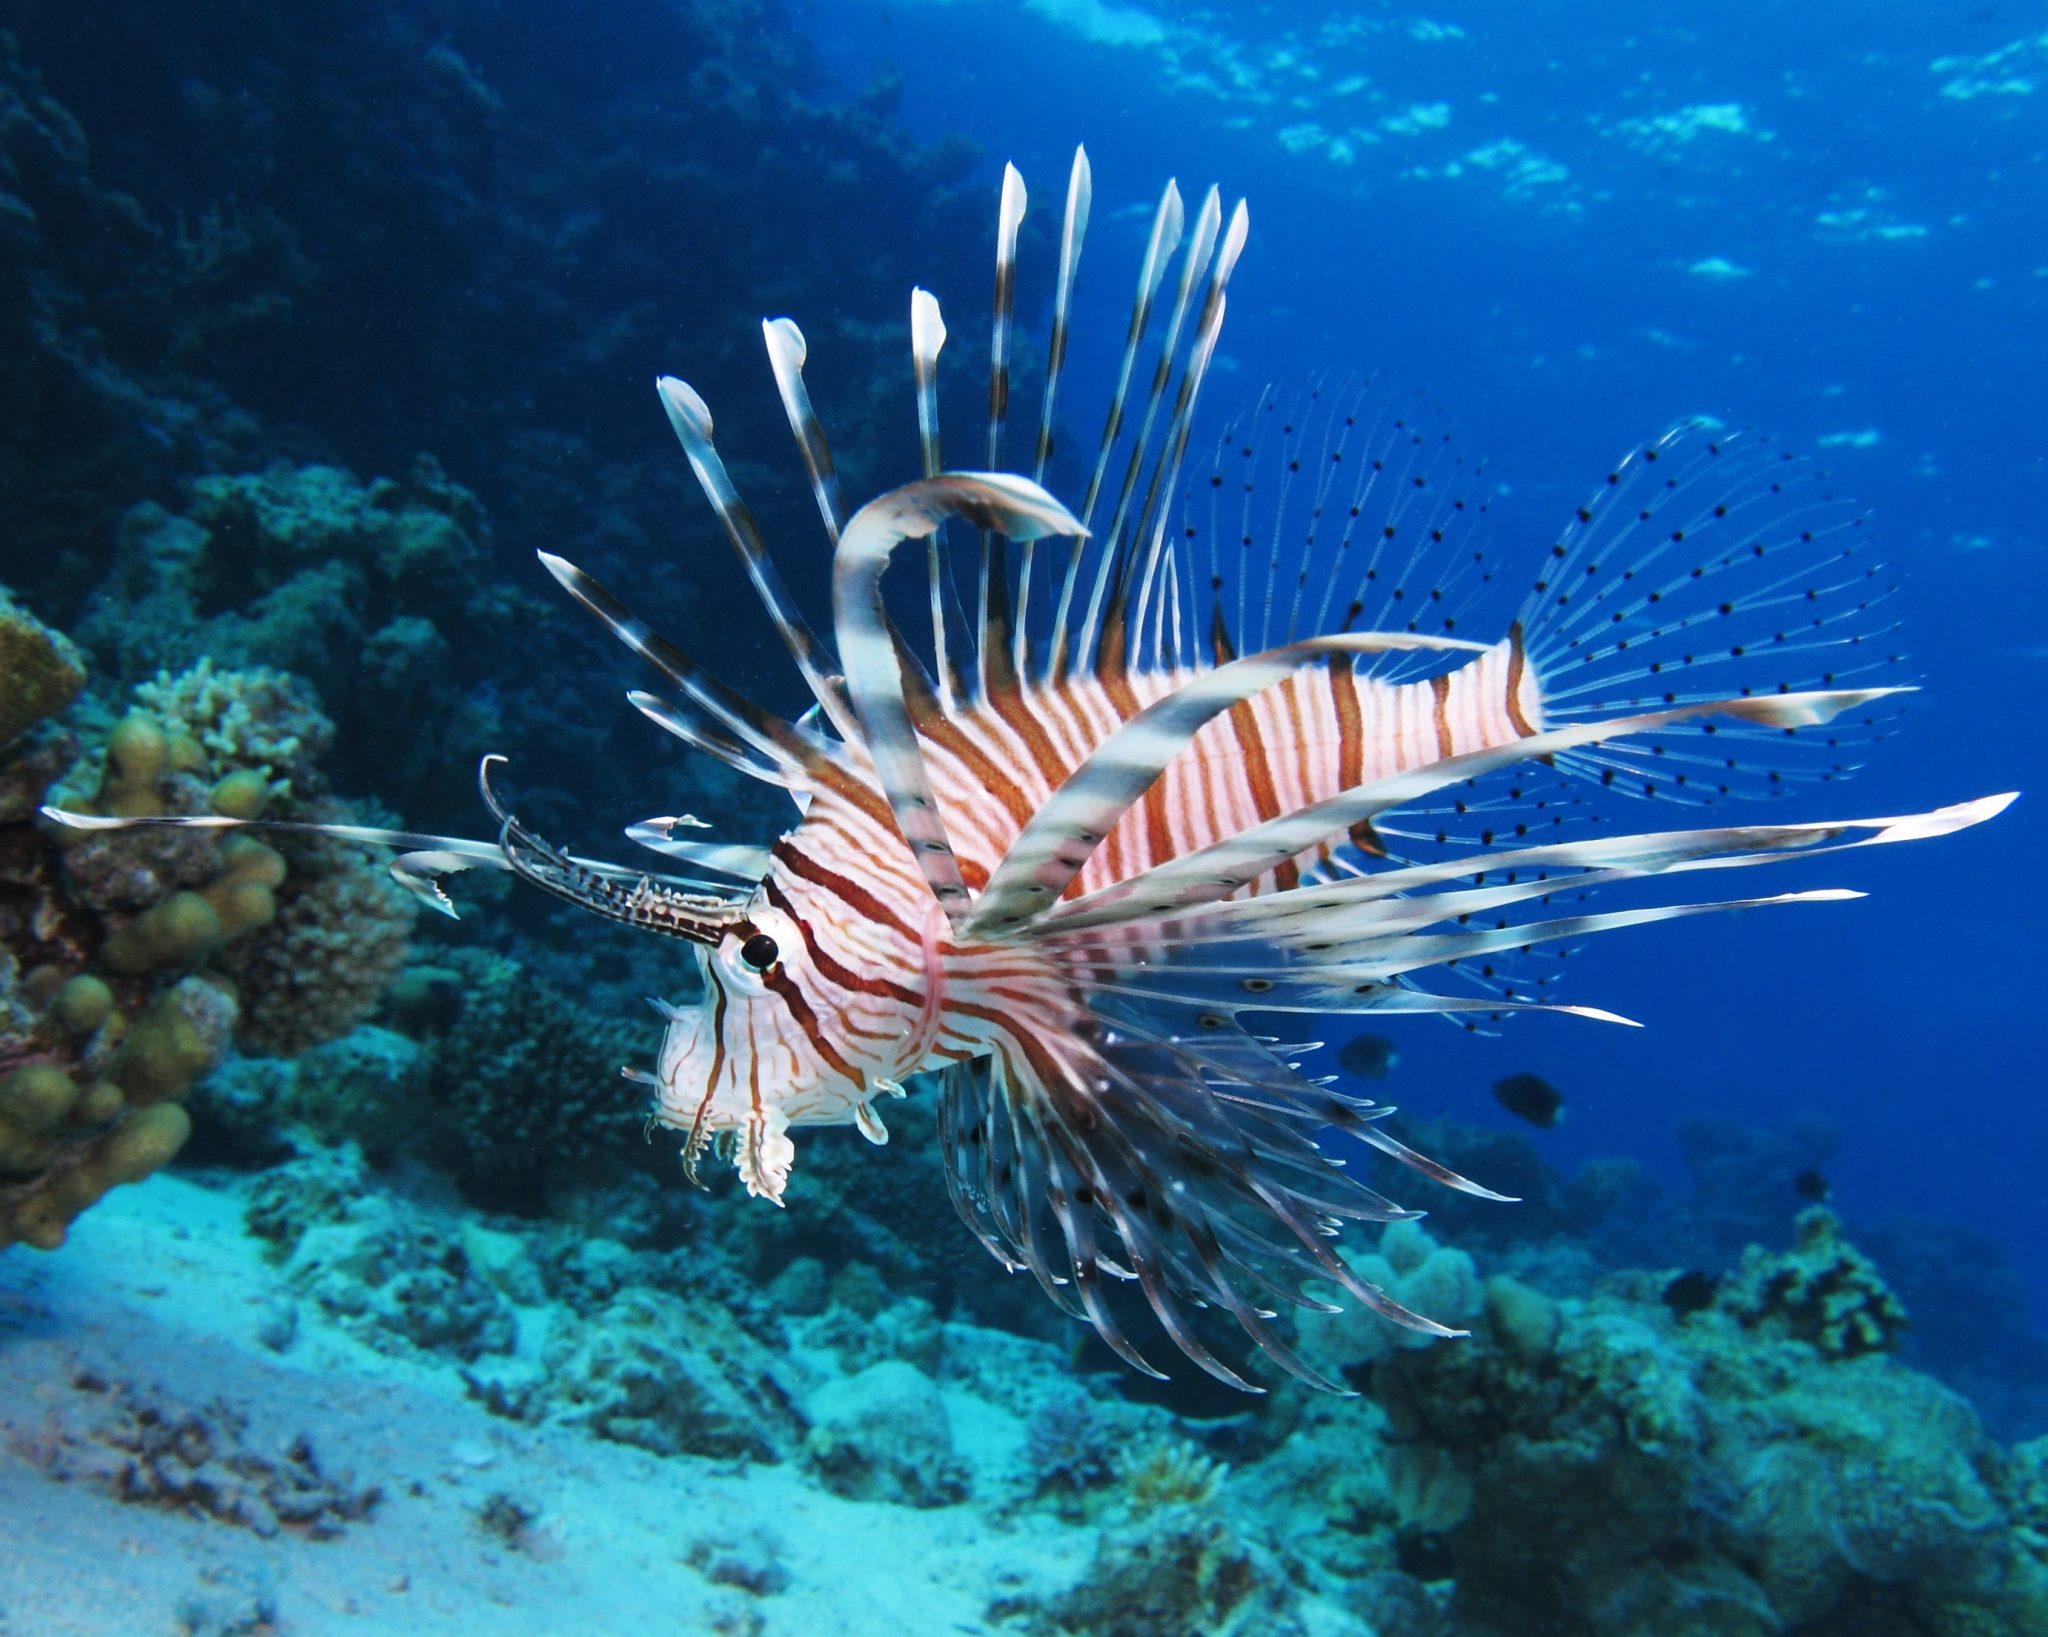 Learn more about lionfish this weekend